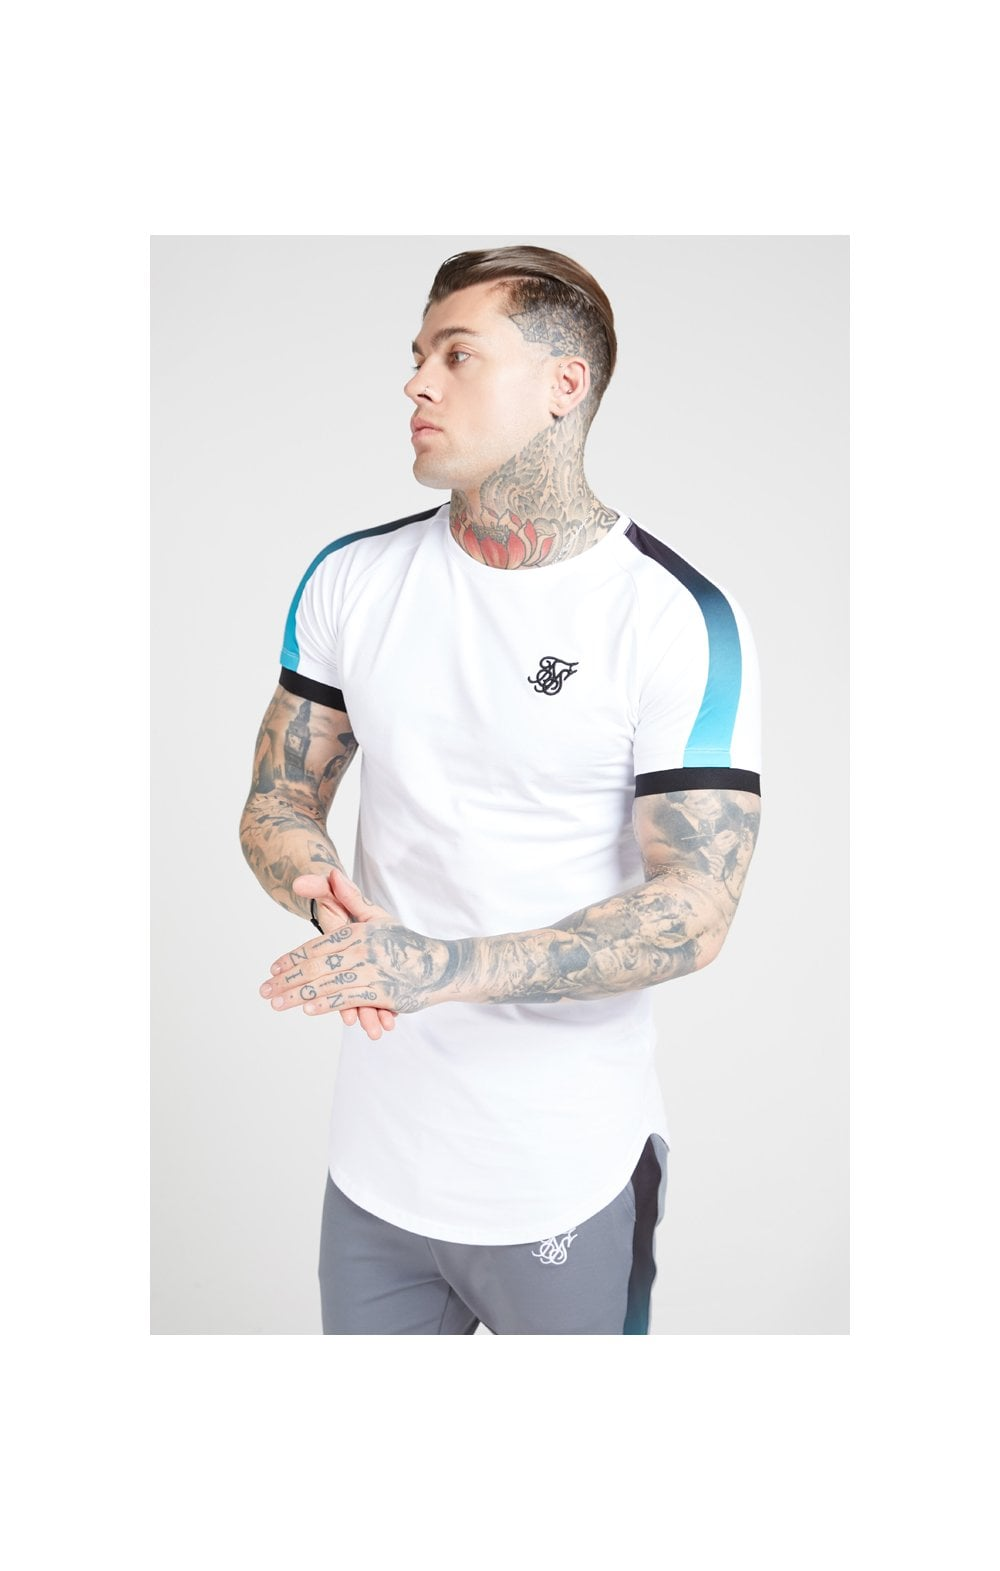 SikSilk S/S Inset Cuff Fade Panel Tech Tee – White, Black & Teal (1)